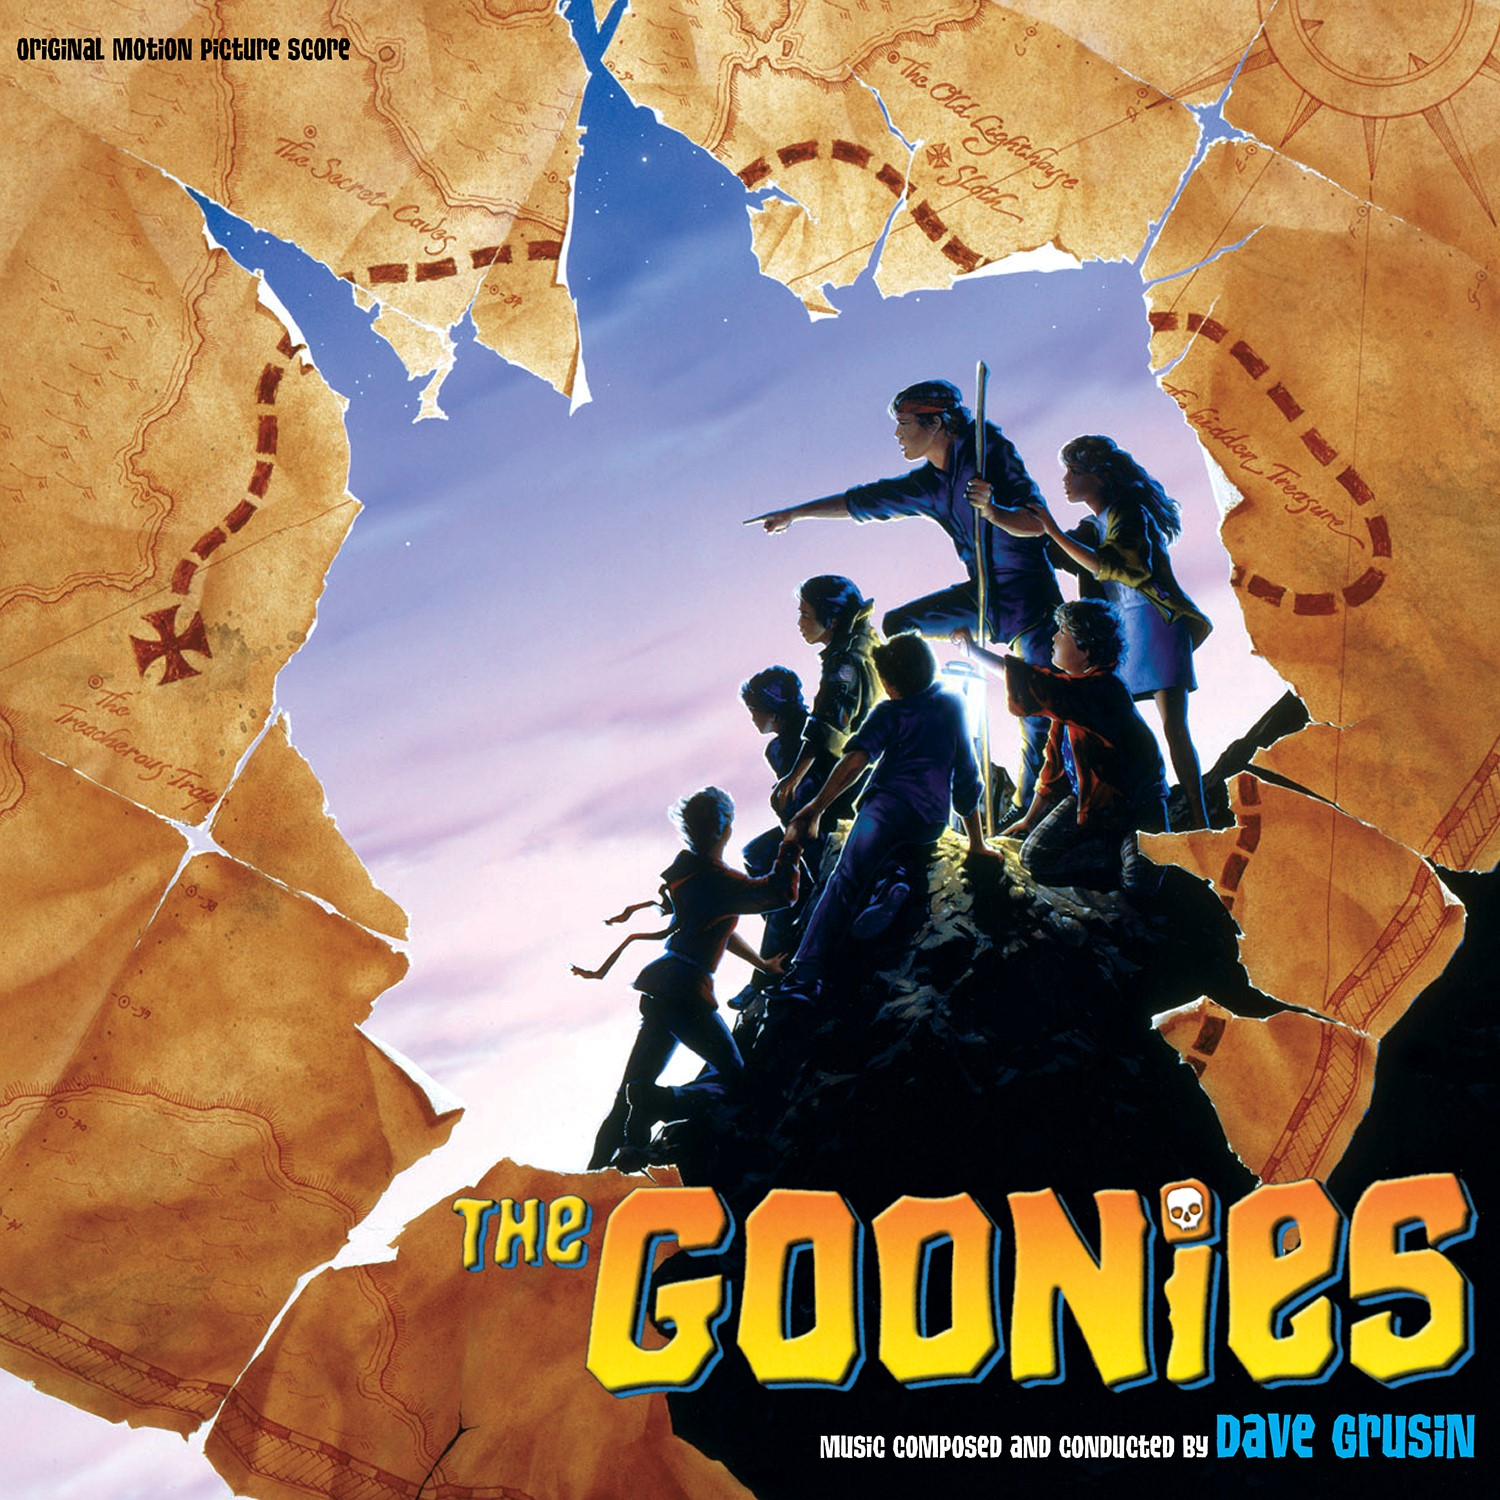 Dave Grusin Pict Rex - The Goonies (Original Motion Picture Score) [One-Eyed Willie Picture Disc] [RSD Drops 2021]